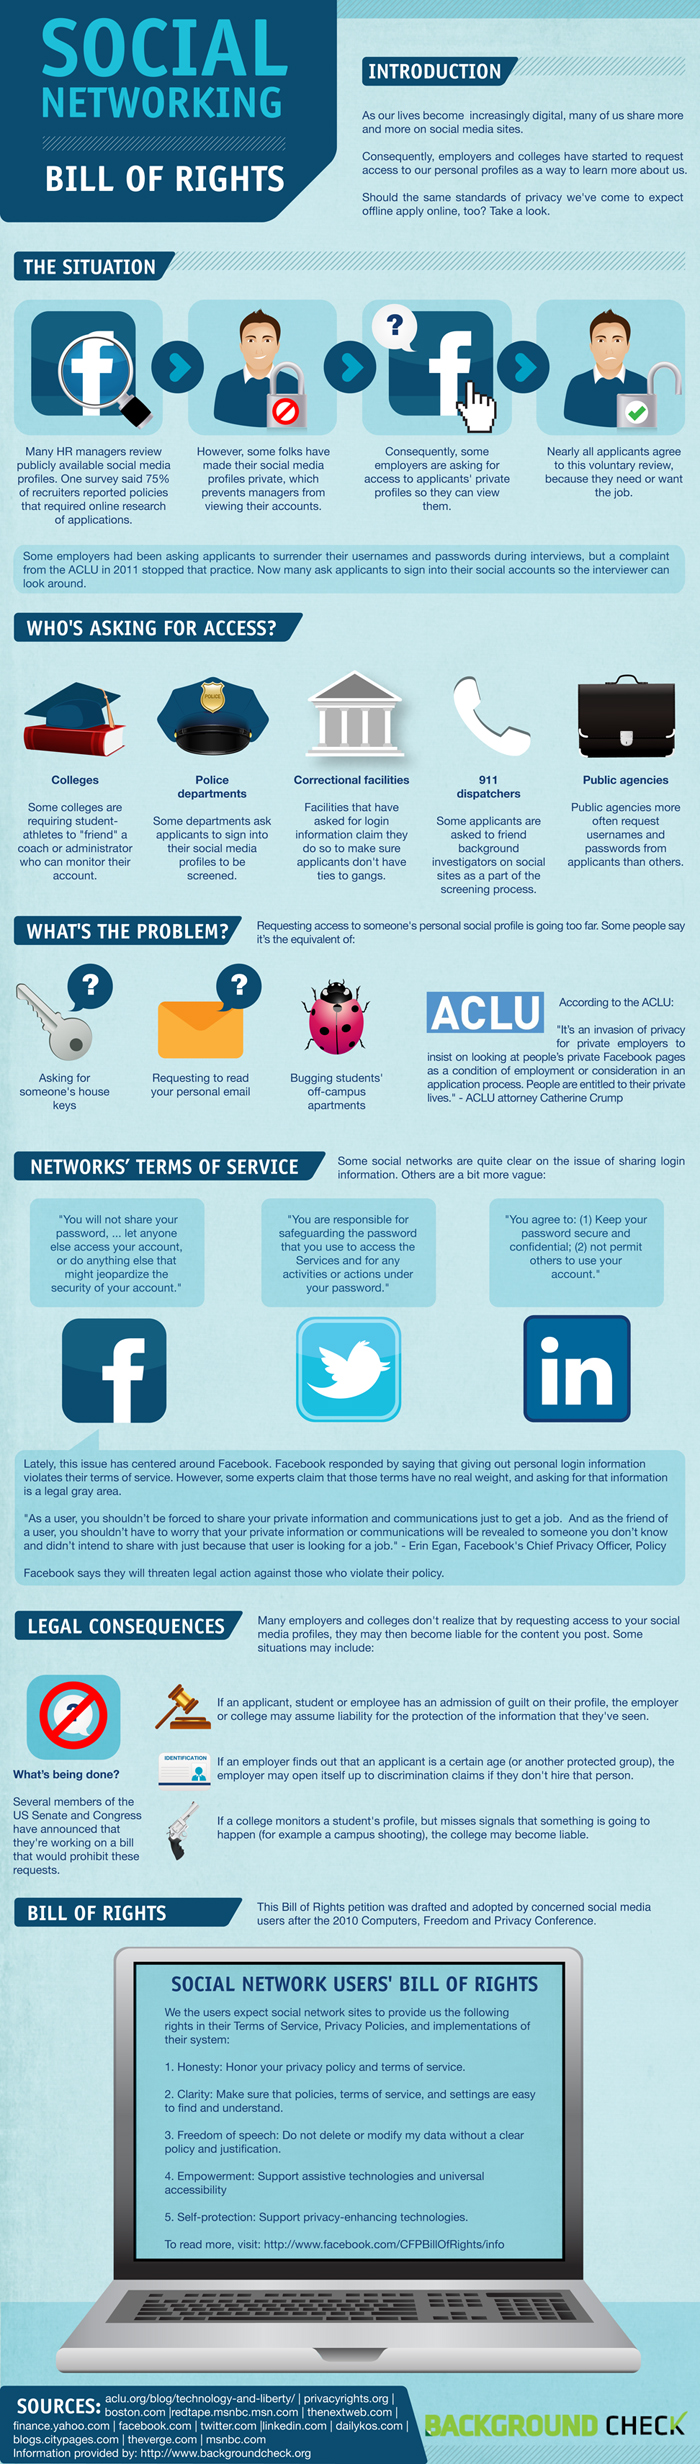 Social Networking: Bill of Rights [infographic]